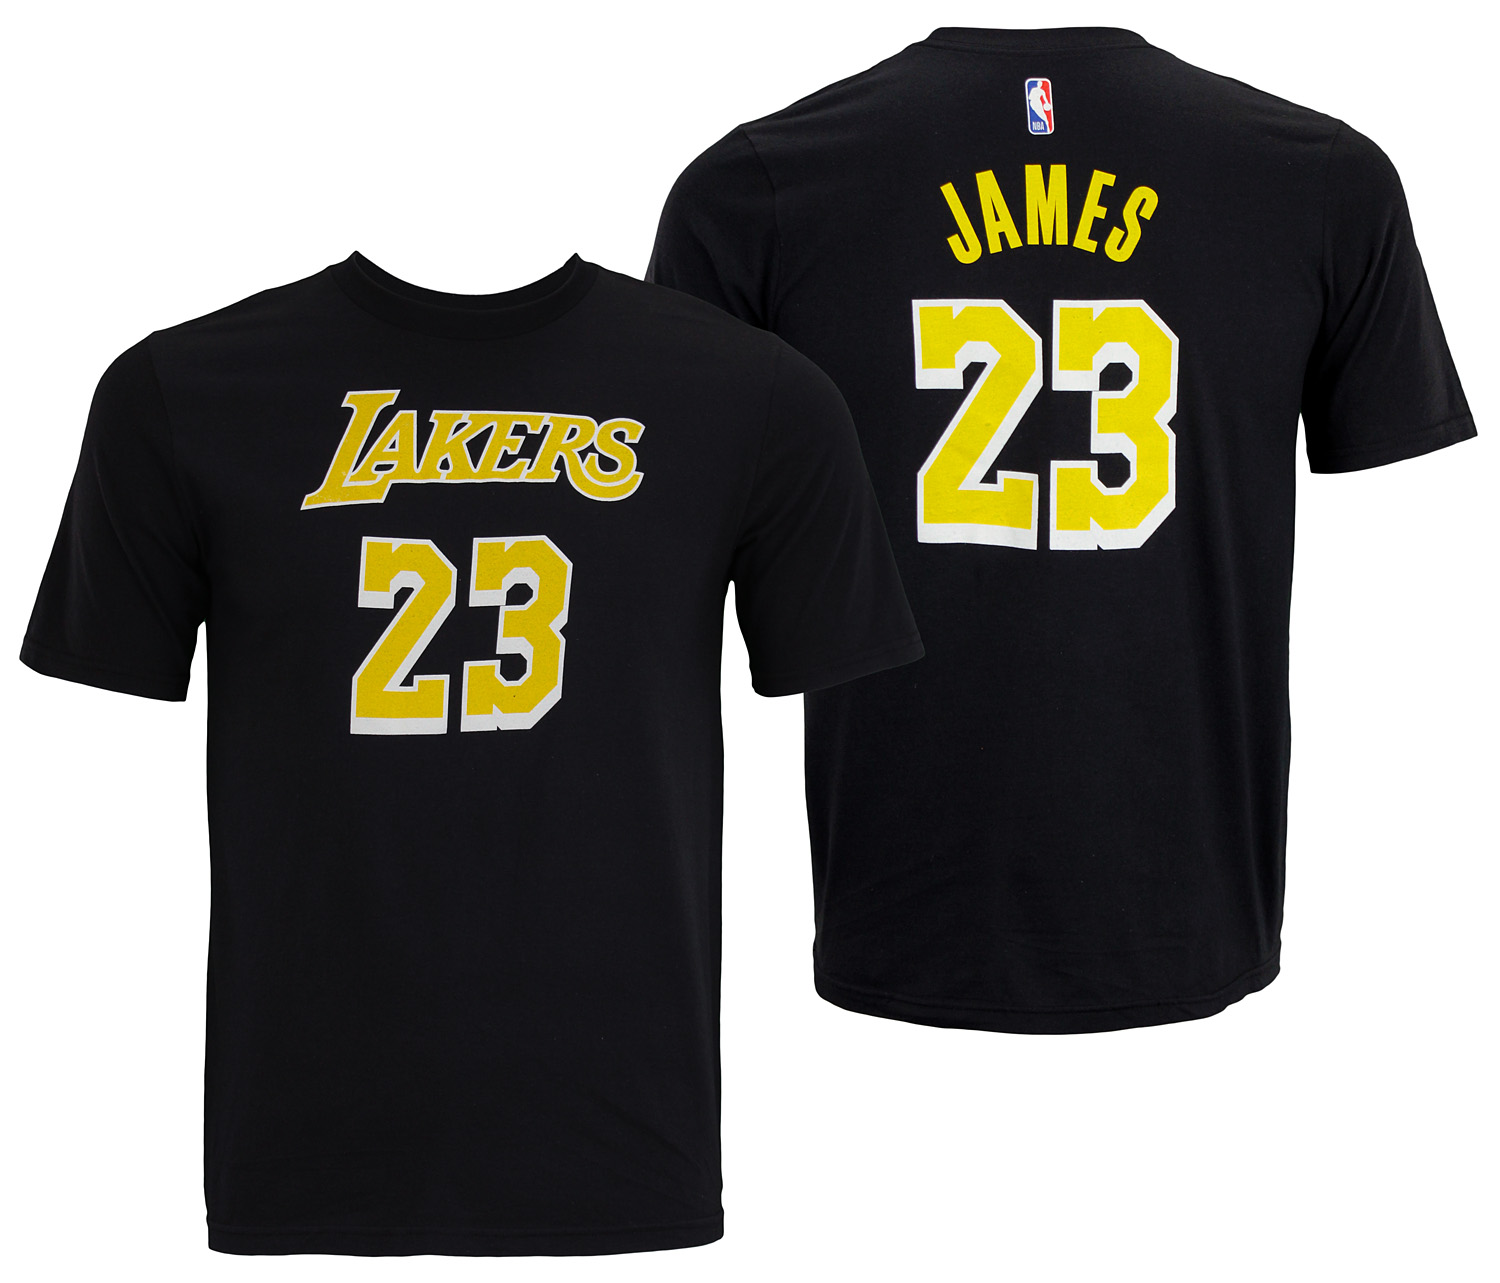 sports shoes 09c25 6cd1d Details about NBA Youth Los Angeles Lakers Lebron James #23 Player Tee  Shirt, Black